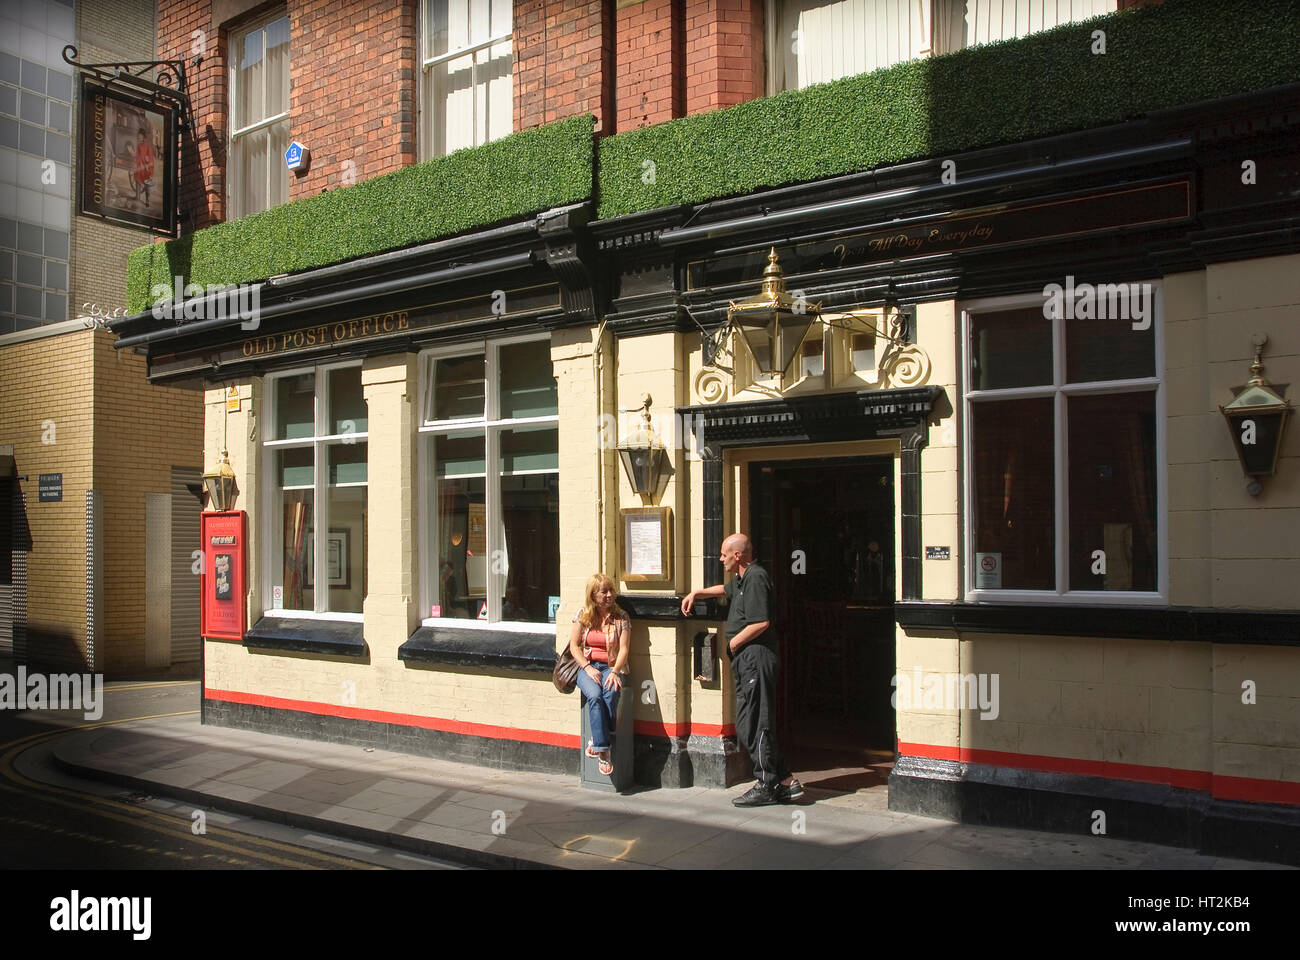 The Old Poste Office public house in School Lane Liverpool. Stock Photo